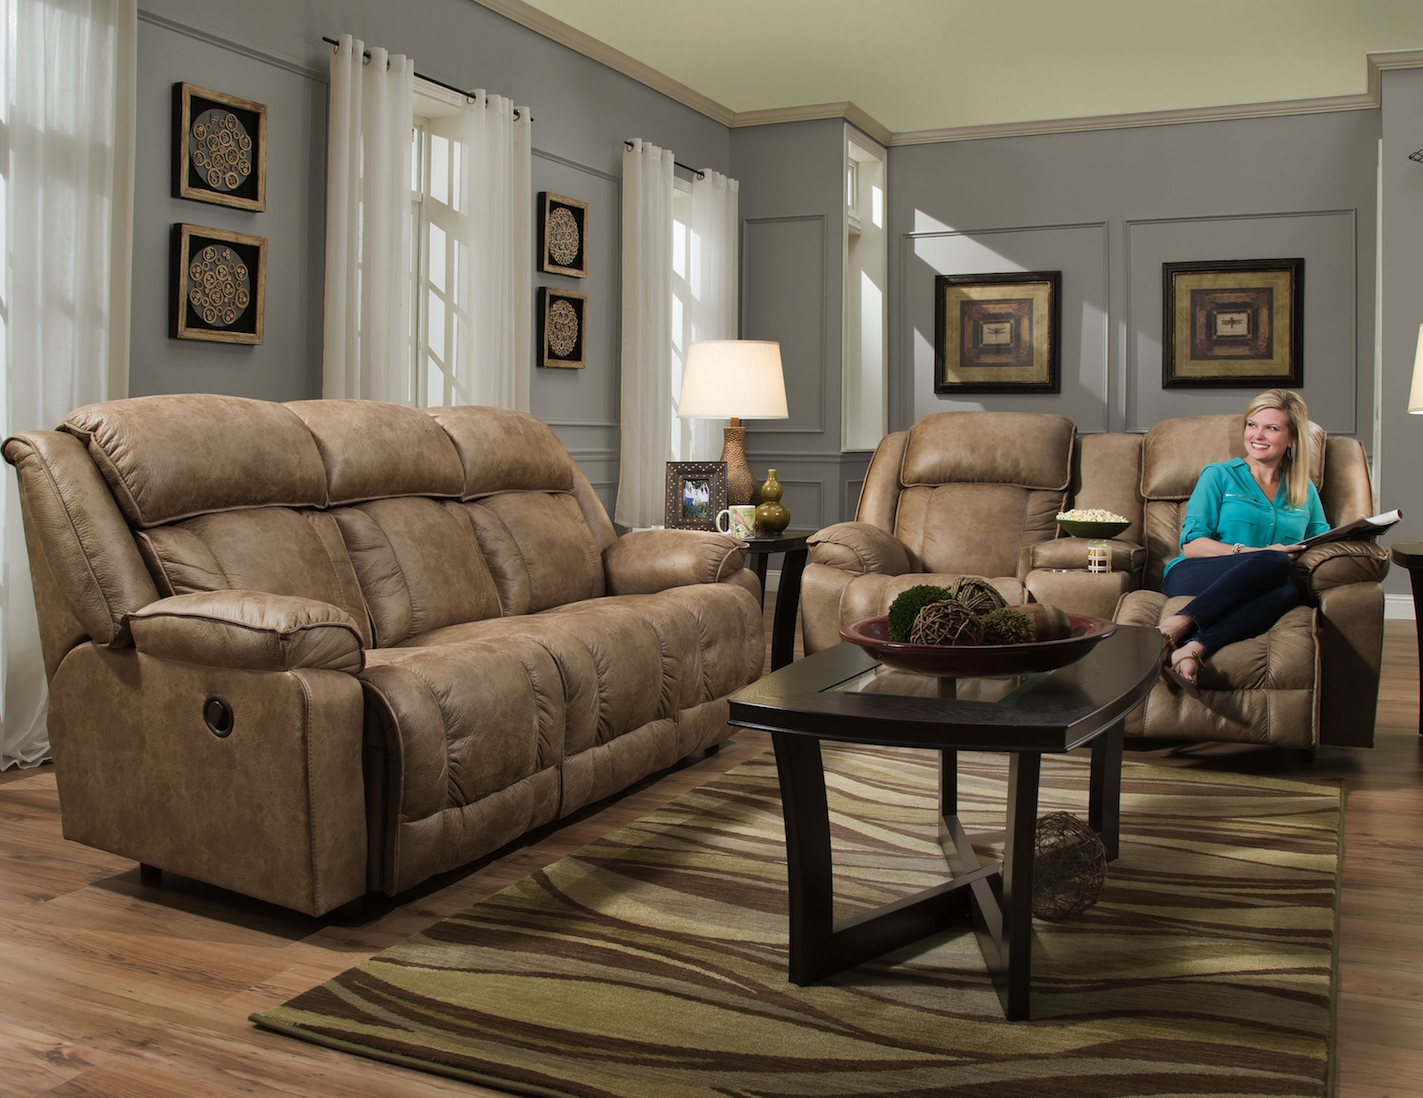 Pleasing Marshall 717 Reclining Sofa In Camel Fabric Sofas And Squirreltailoven Fun Painted Chair Ideas Images Squirreltailovenorg